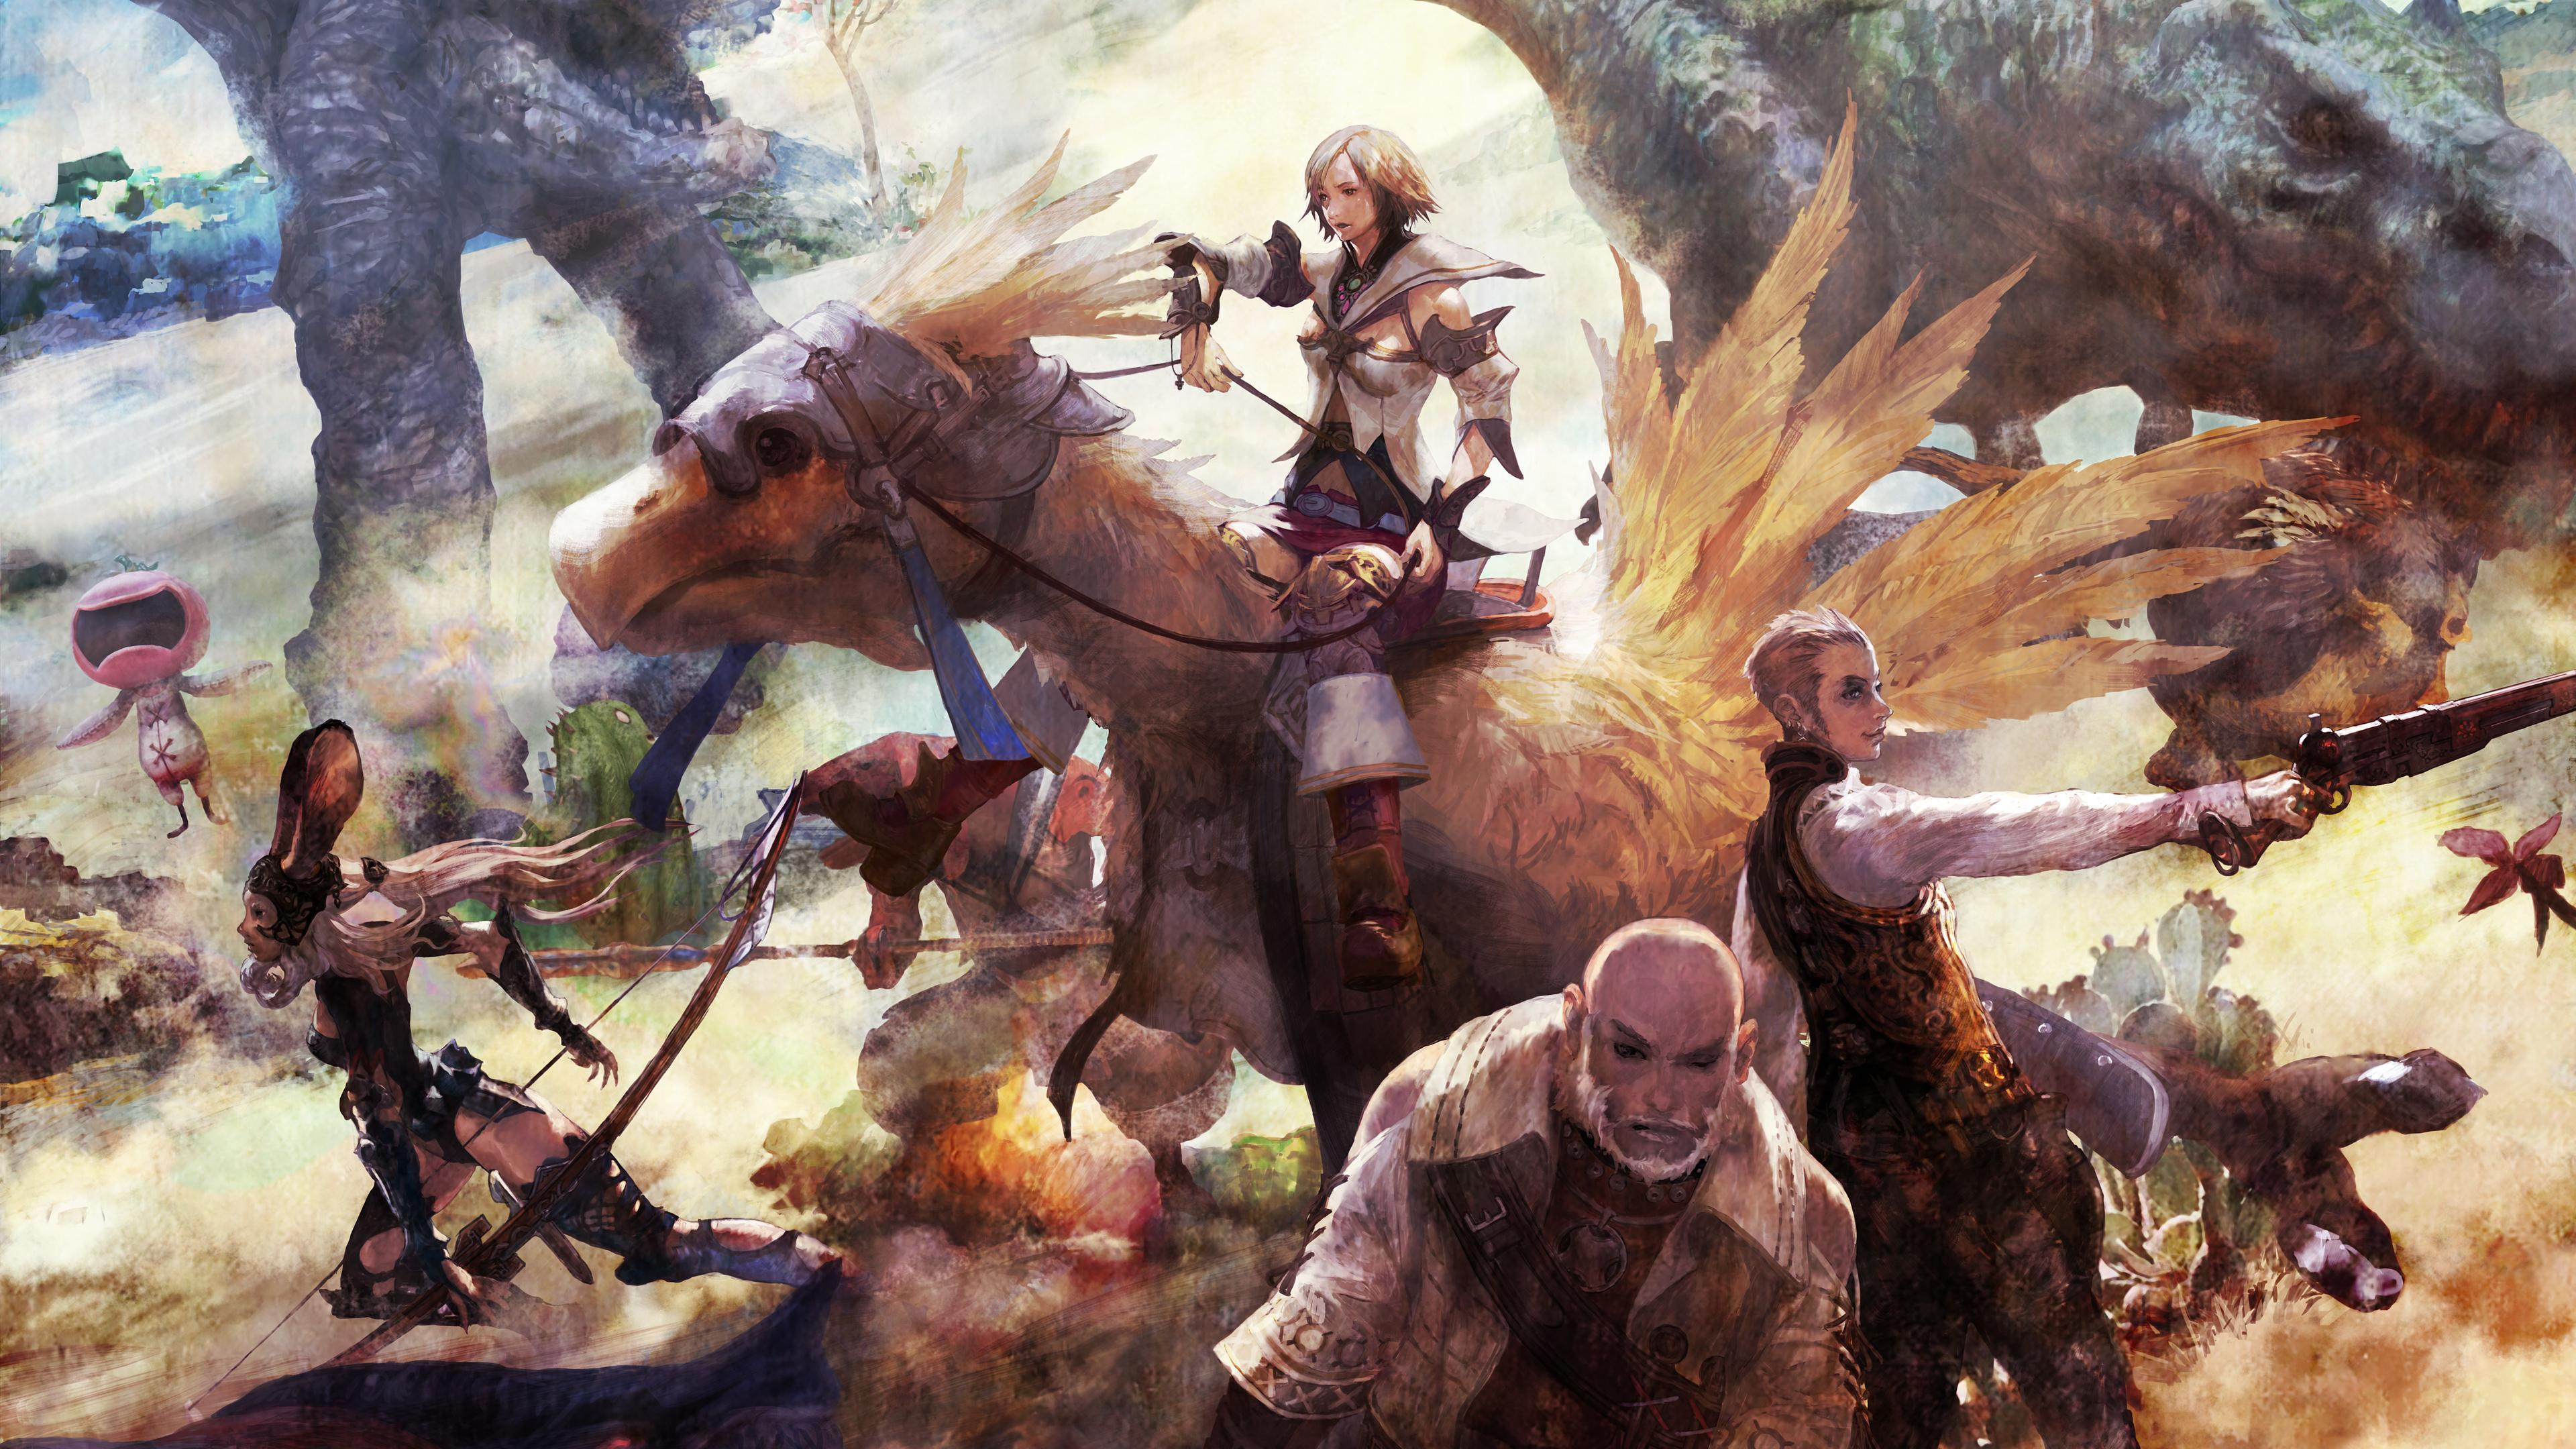 Final Fantasy Xii Desktop Wallpapers Wallpaper Cave